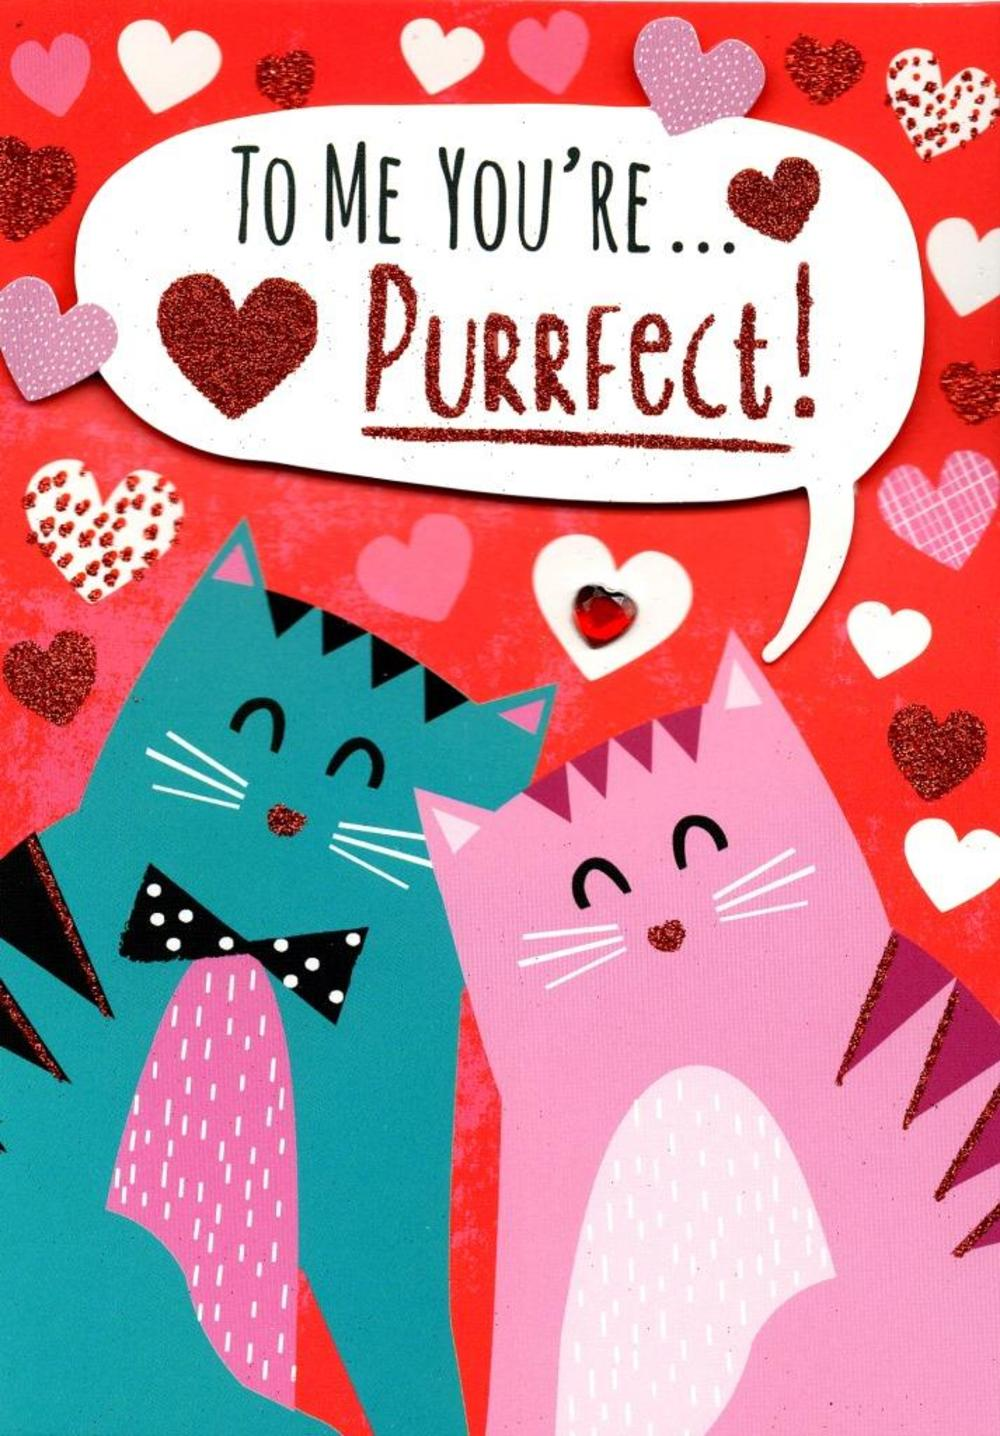 You're Purrfect Valentine's Day Greeting Card